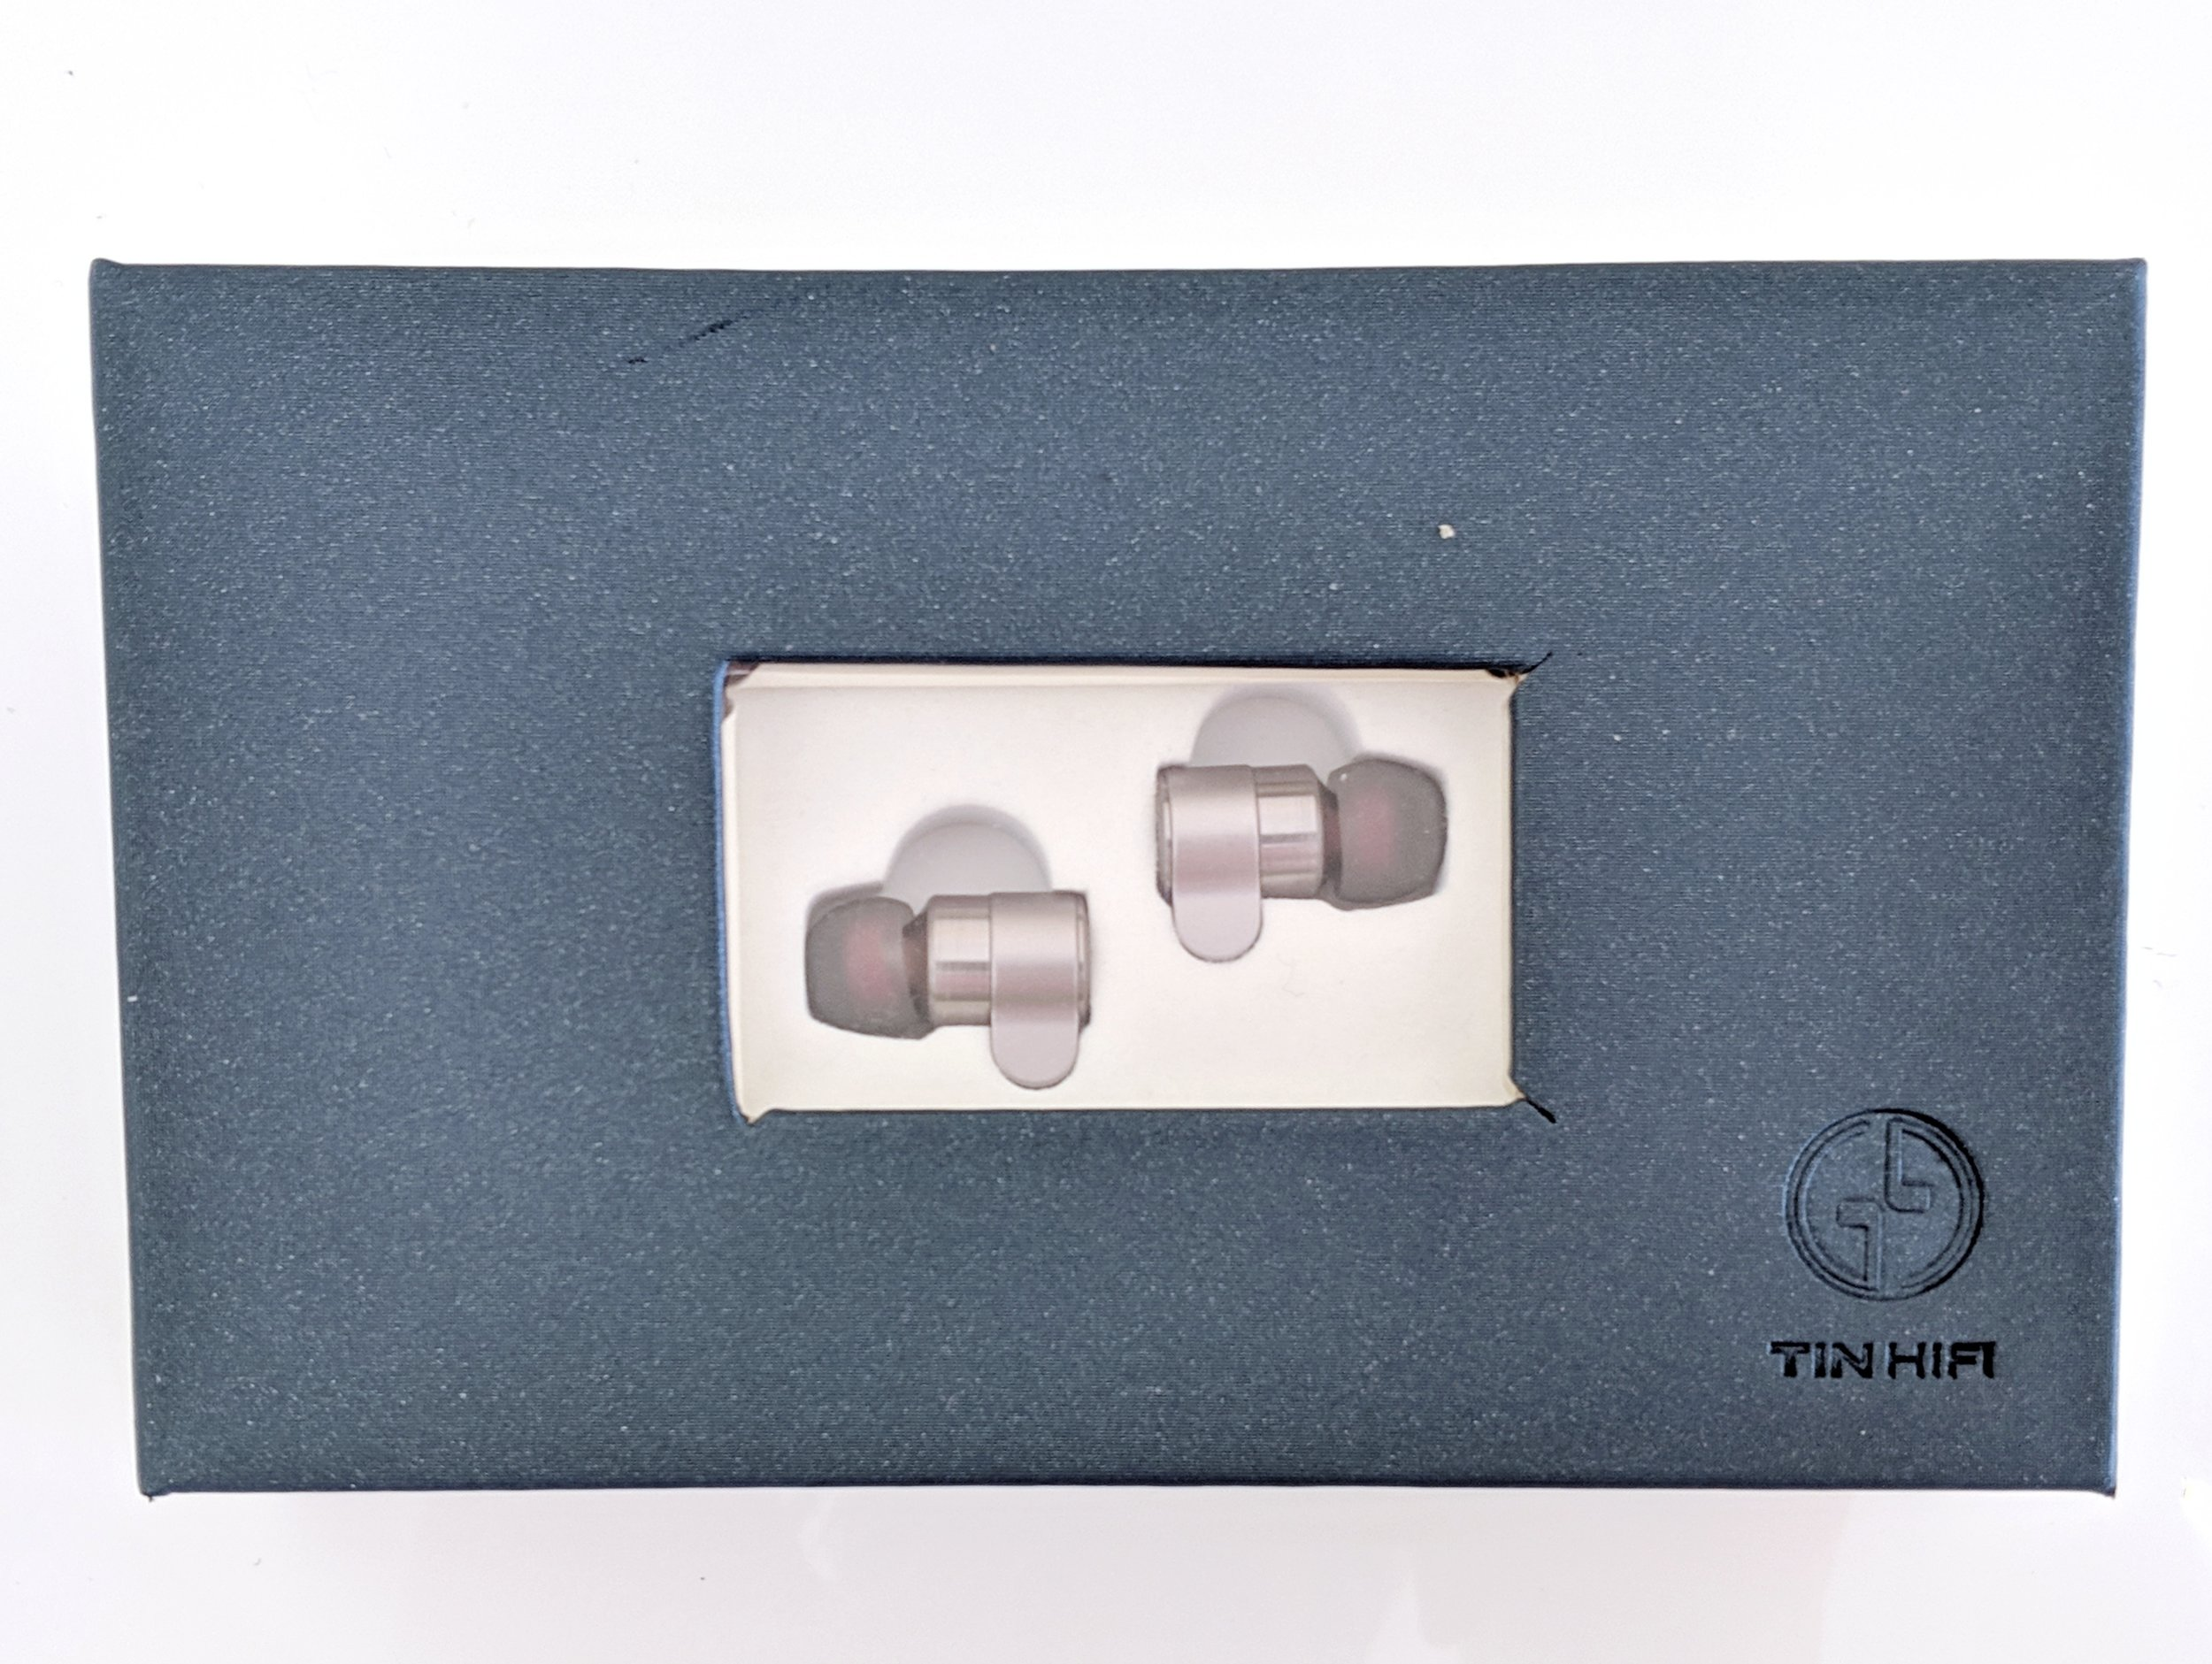 Tin Hifi T3 box with earphones inside.